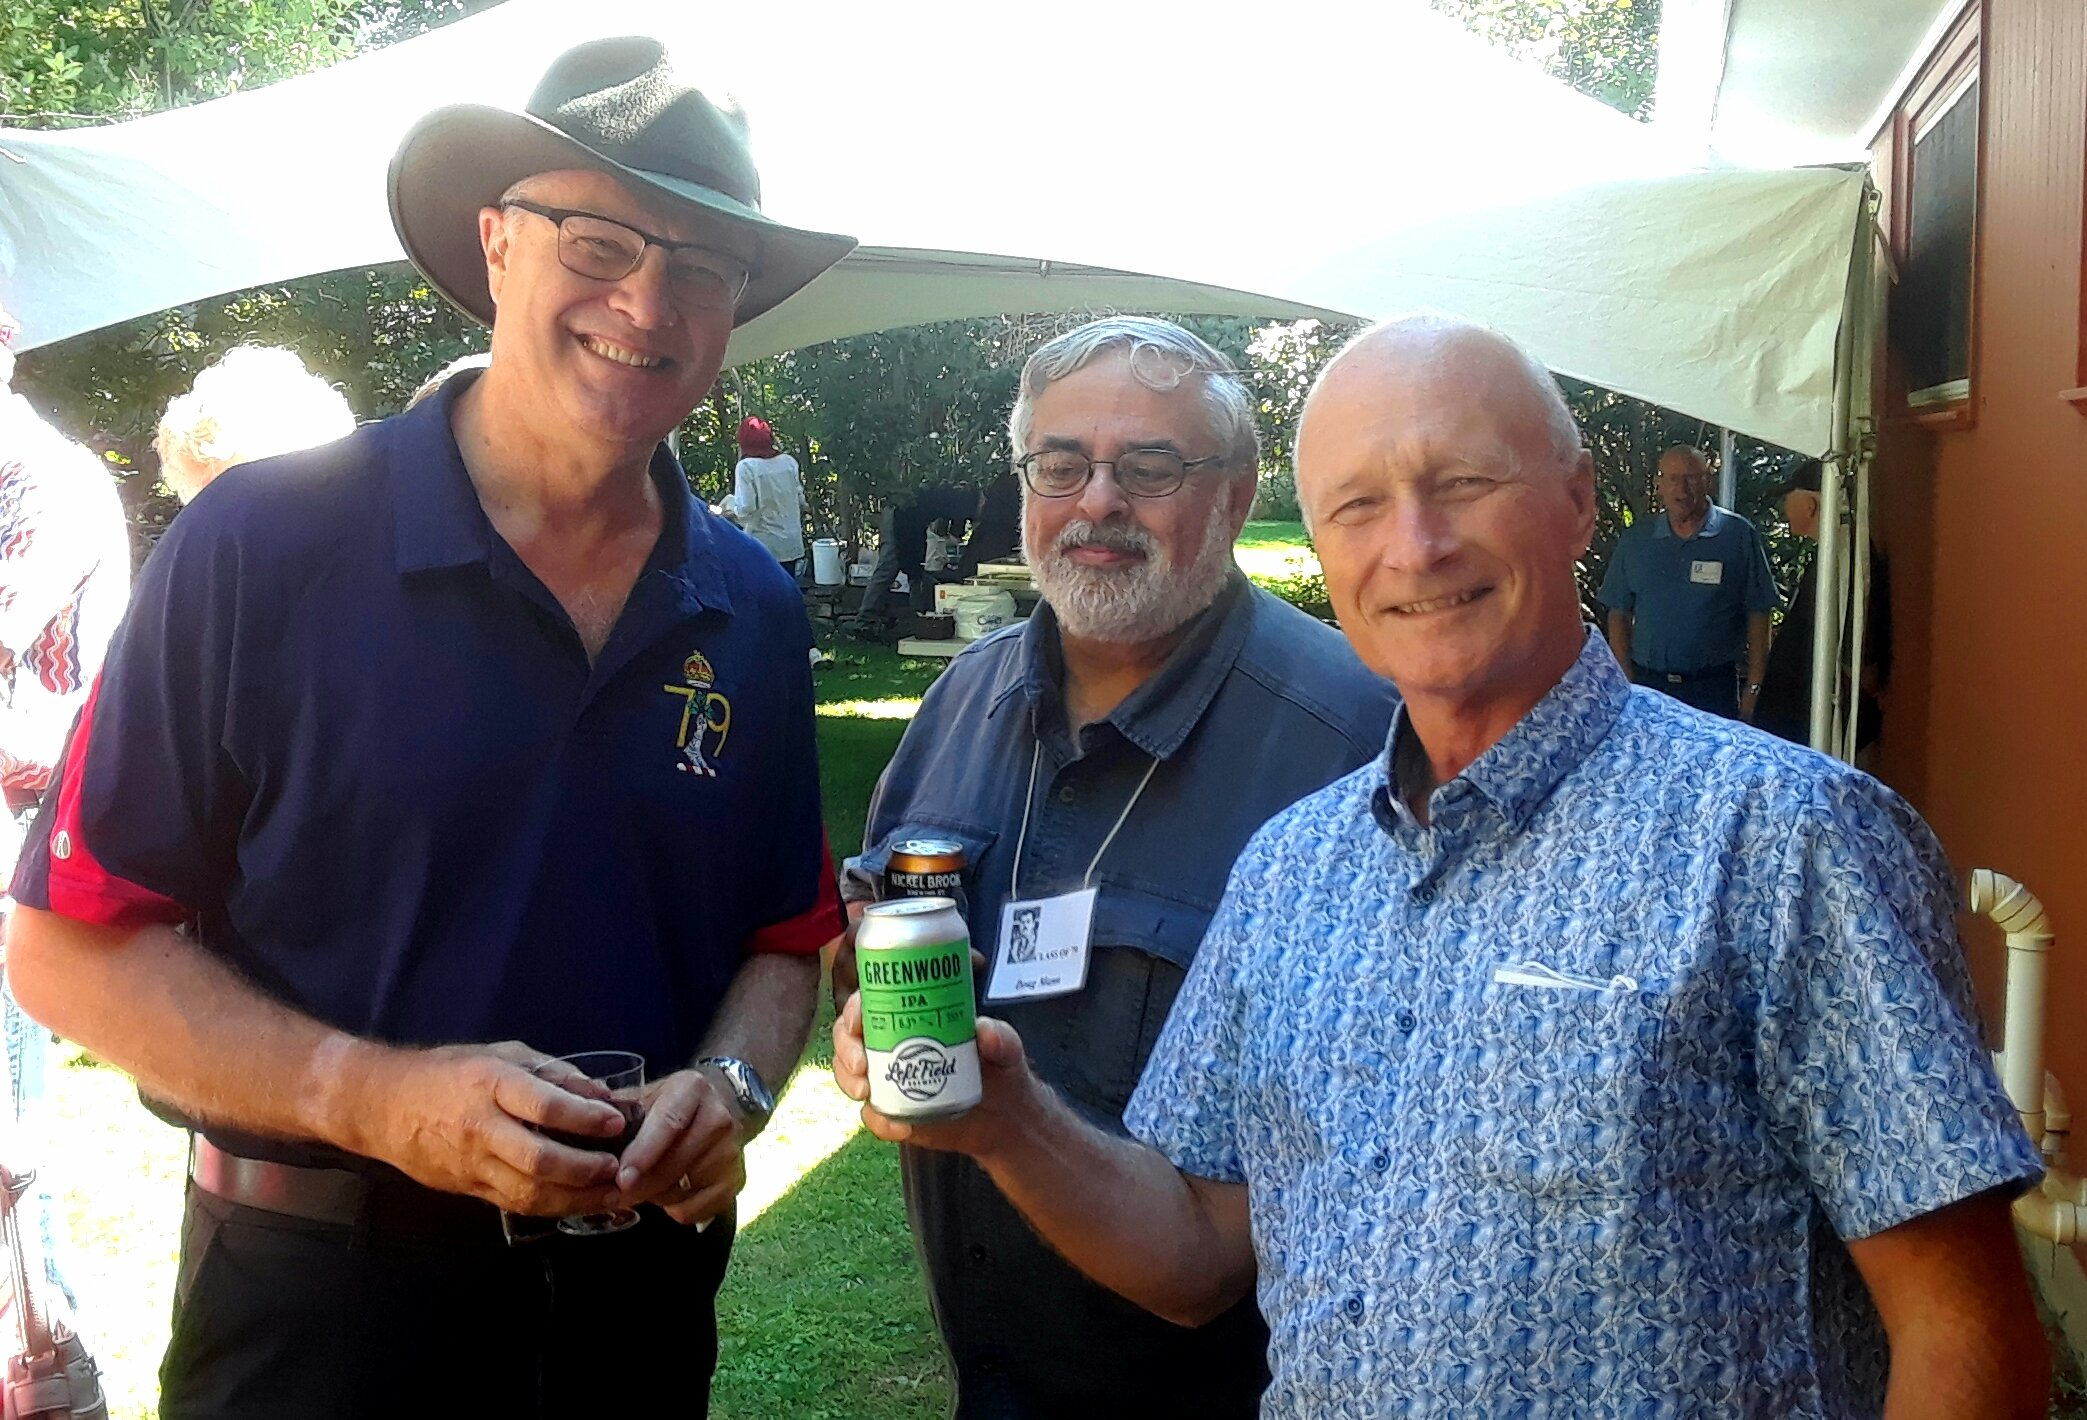 ian yeates, doug mann, and richard greenwood and some free advertisement for the greenwood india pale ale!